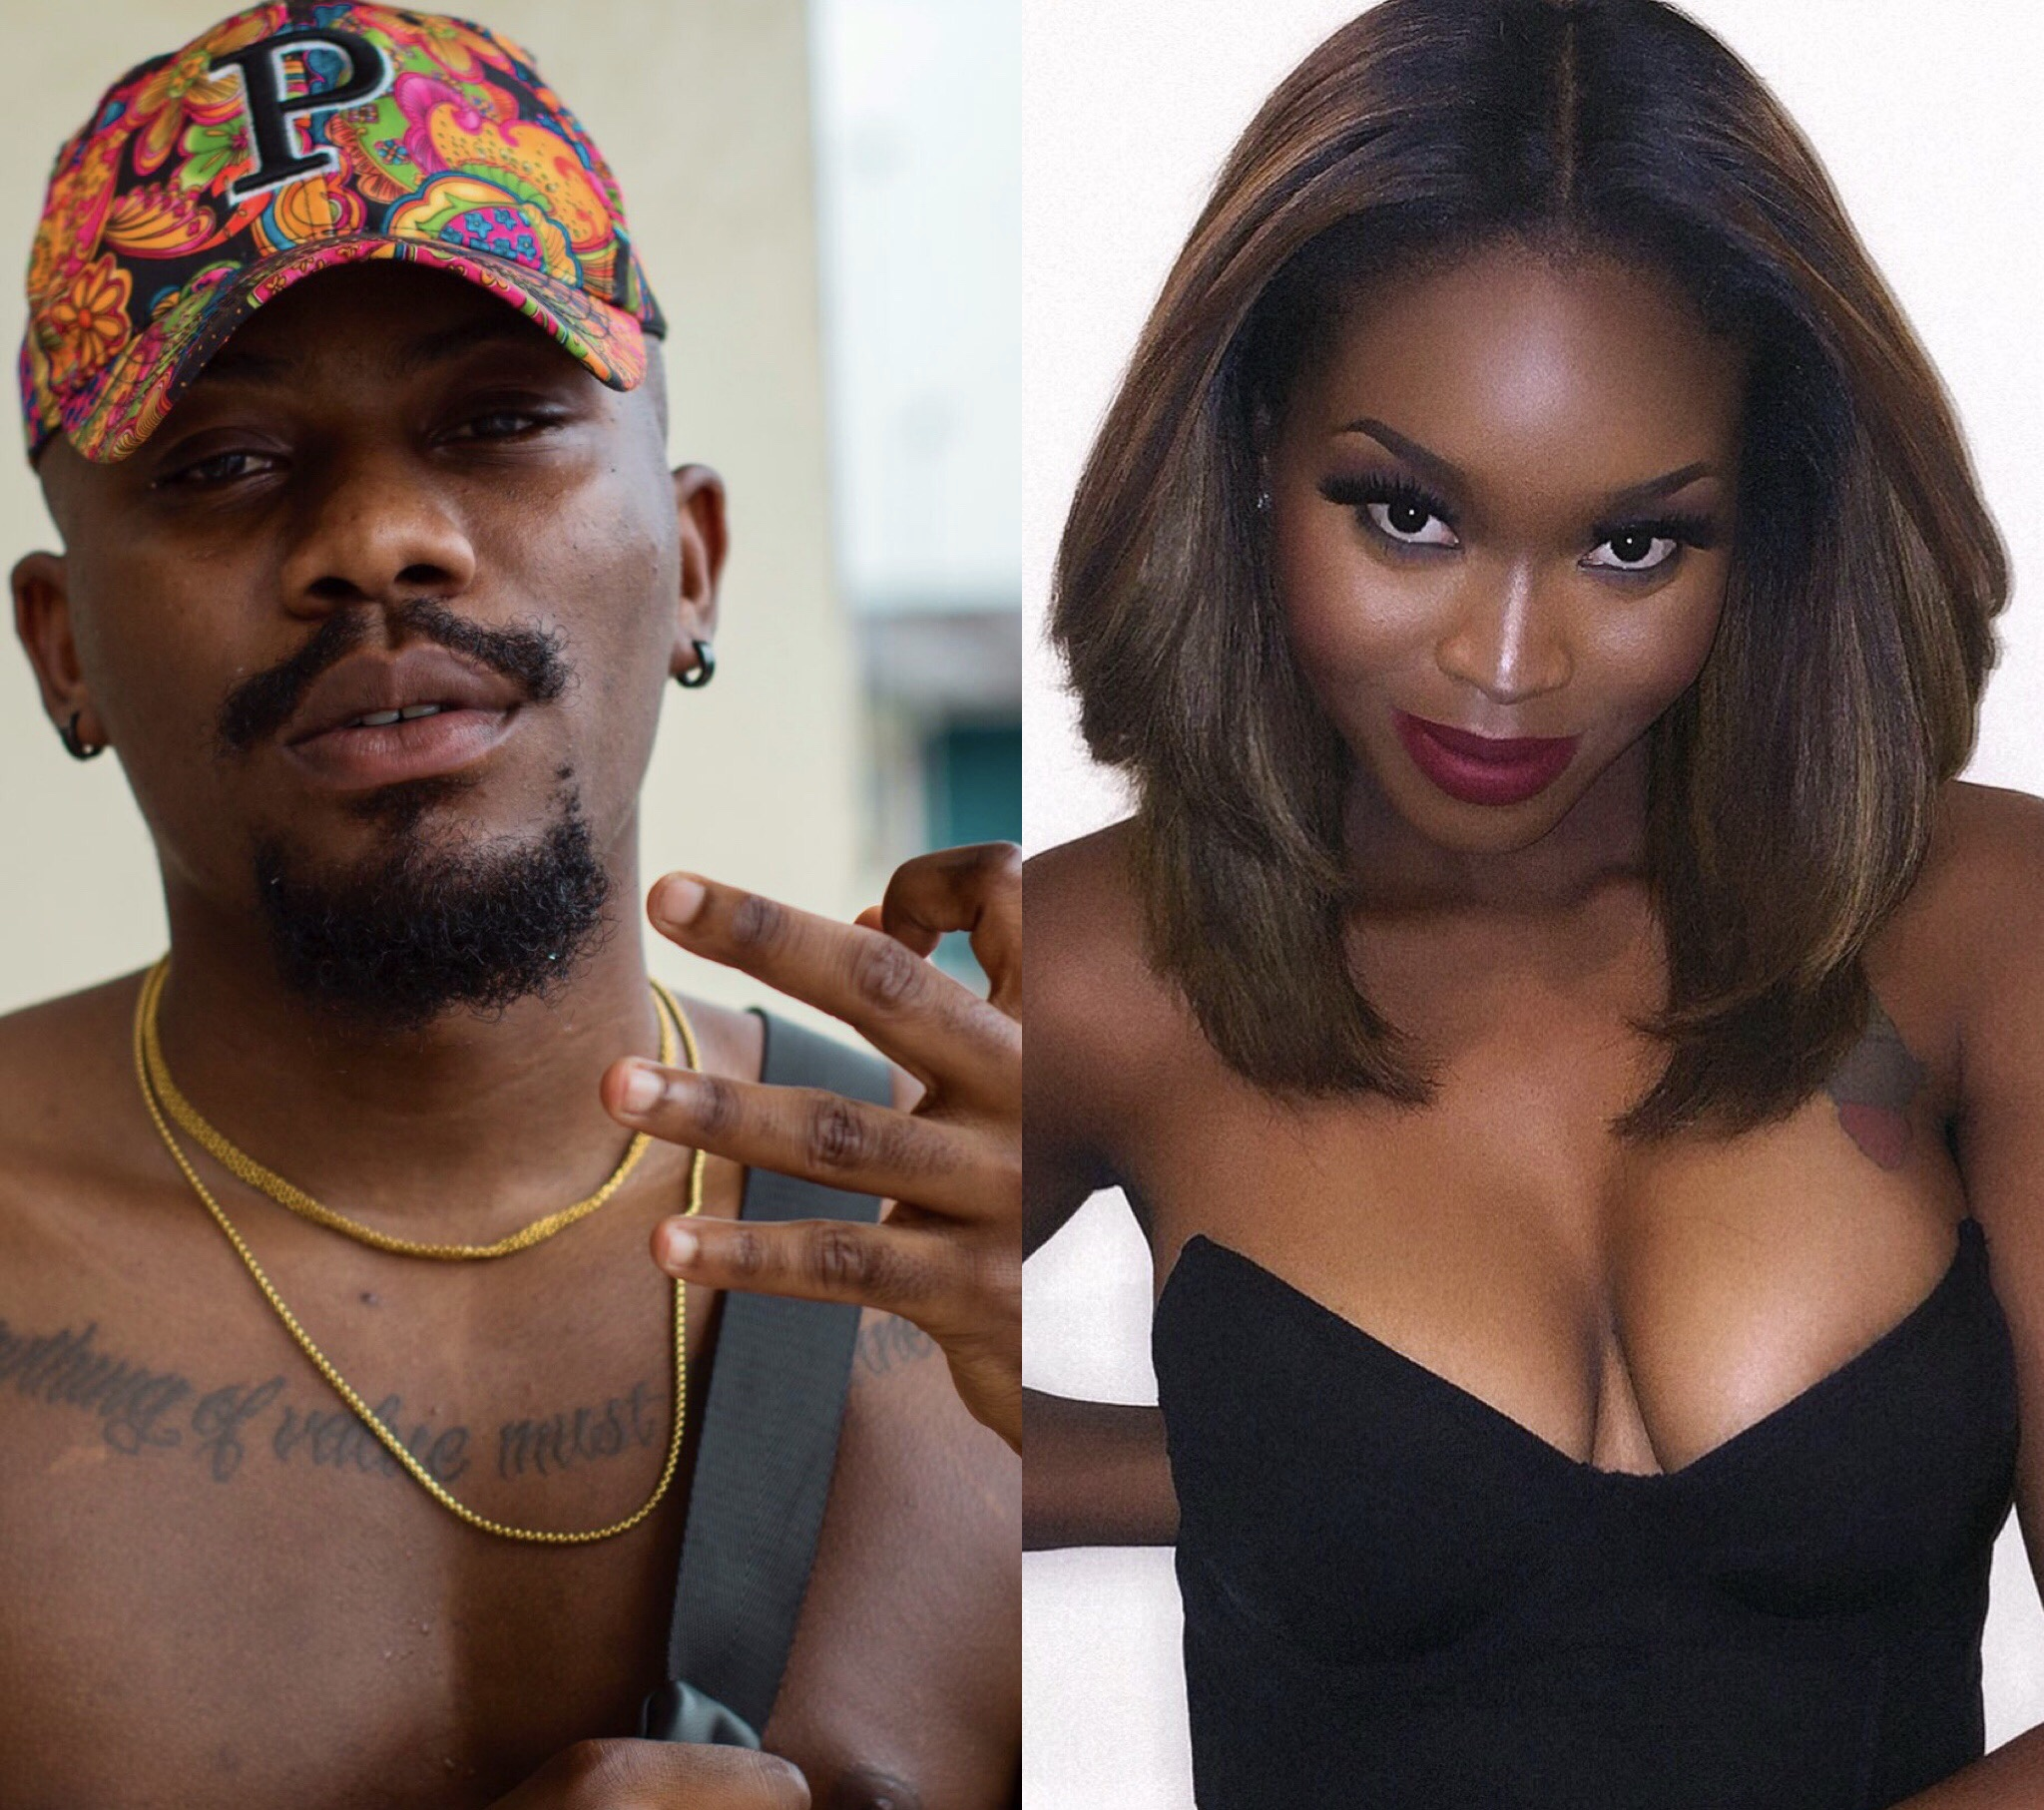 Lady shoots her shot at Ycee and he responds